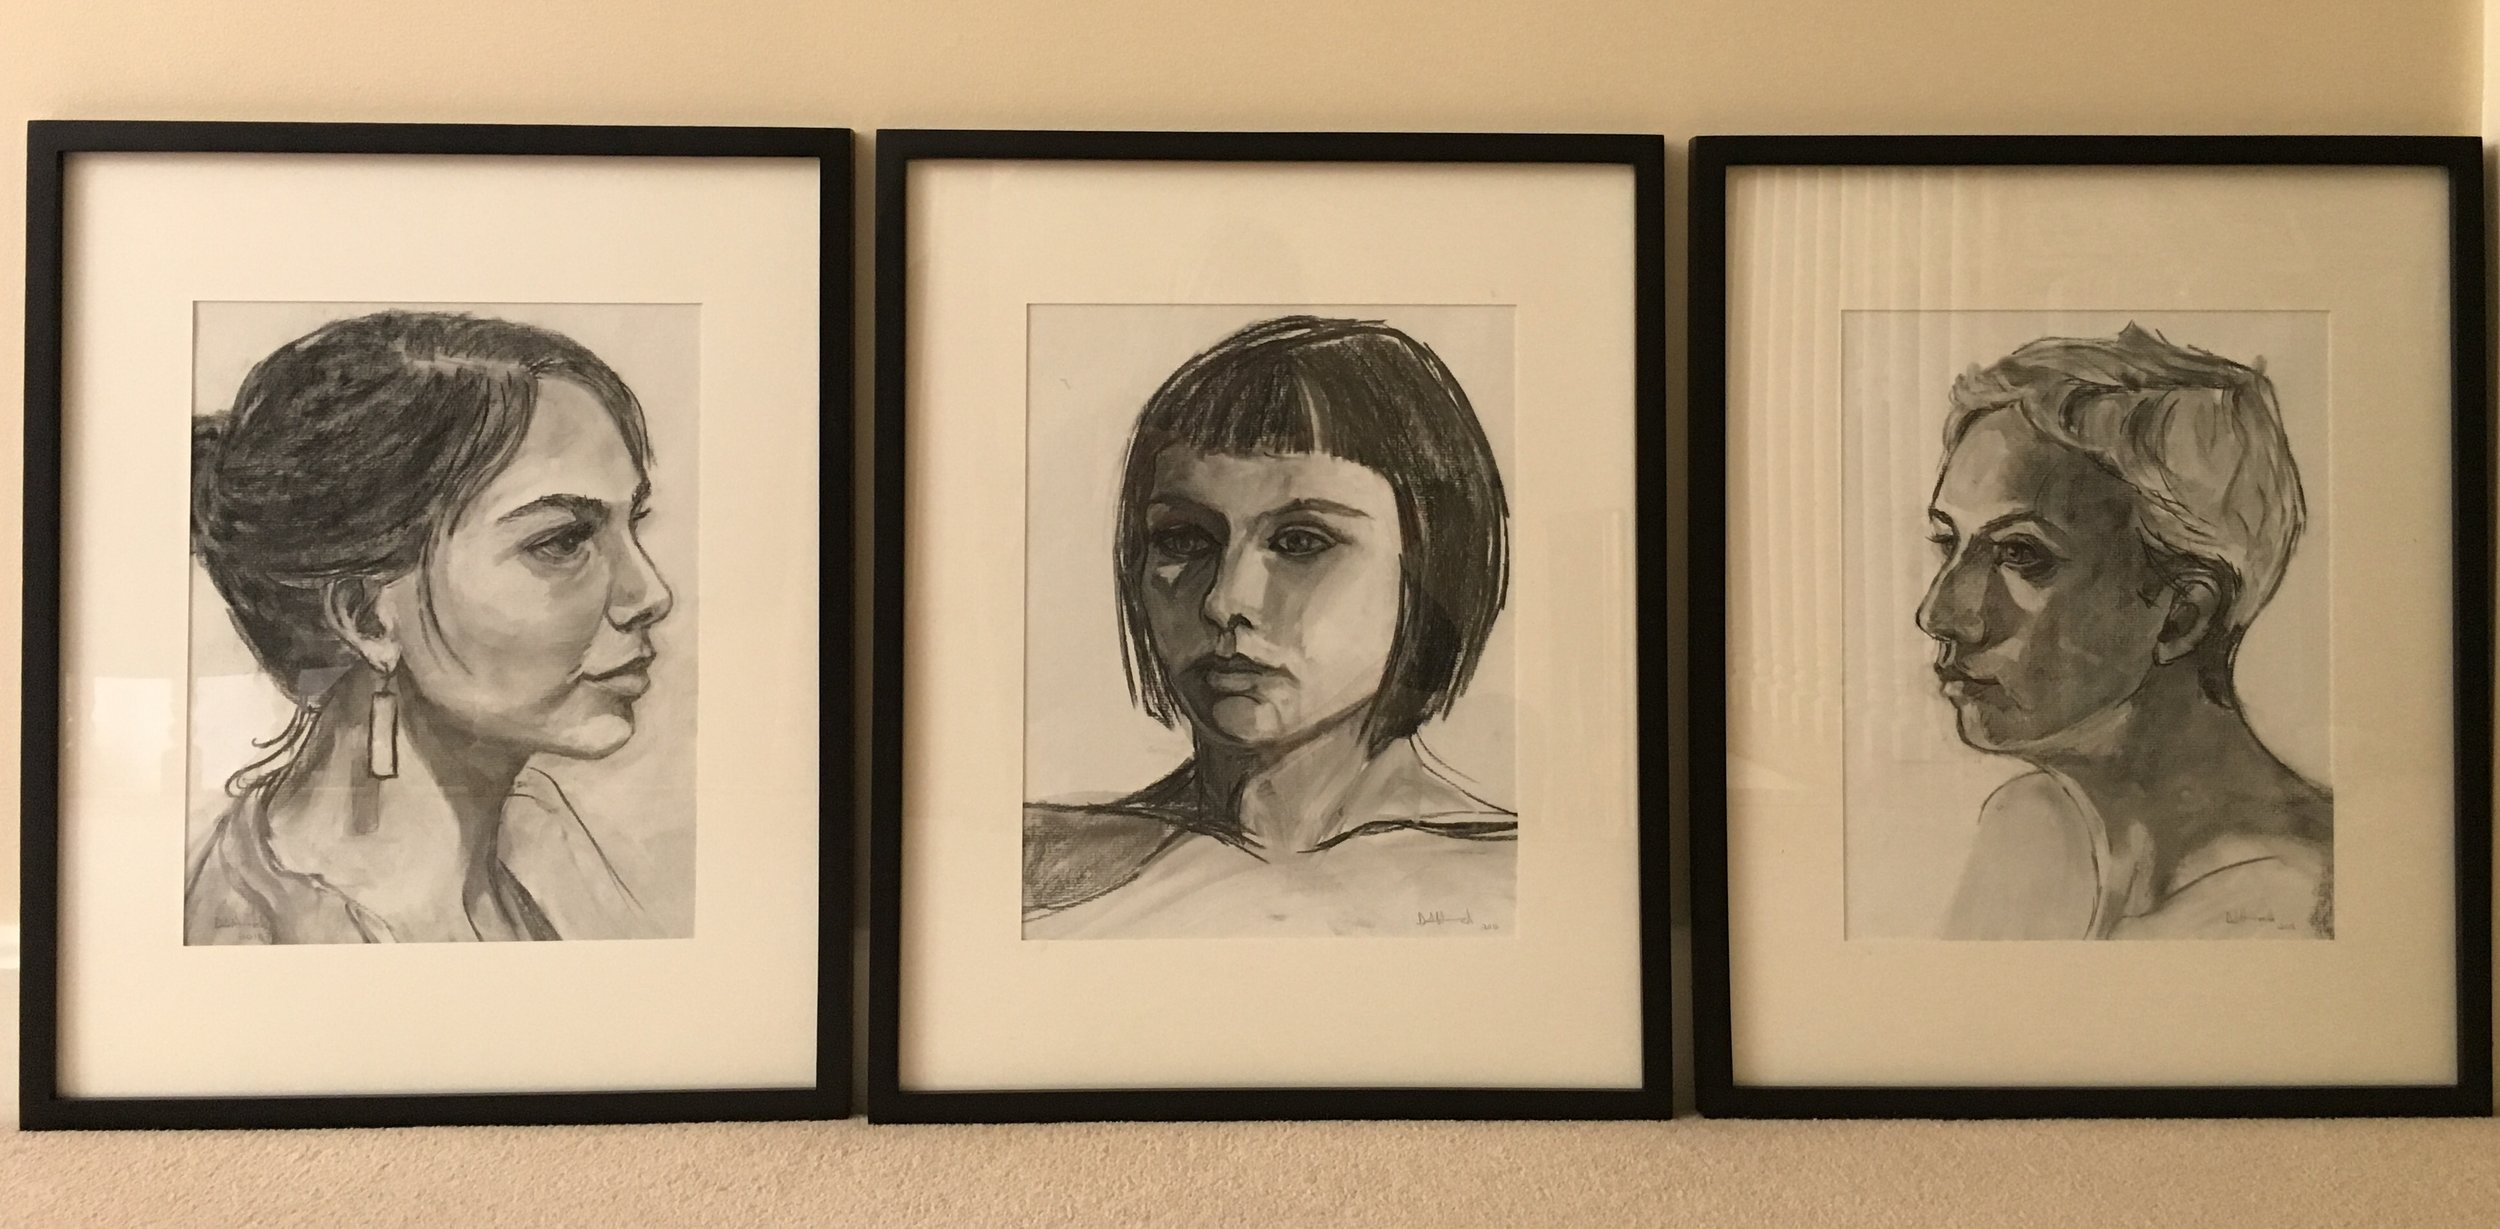 Charcoal portraits on view at 100 Market Gallery Portsmouth June 7 - Sept 6